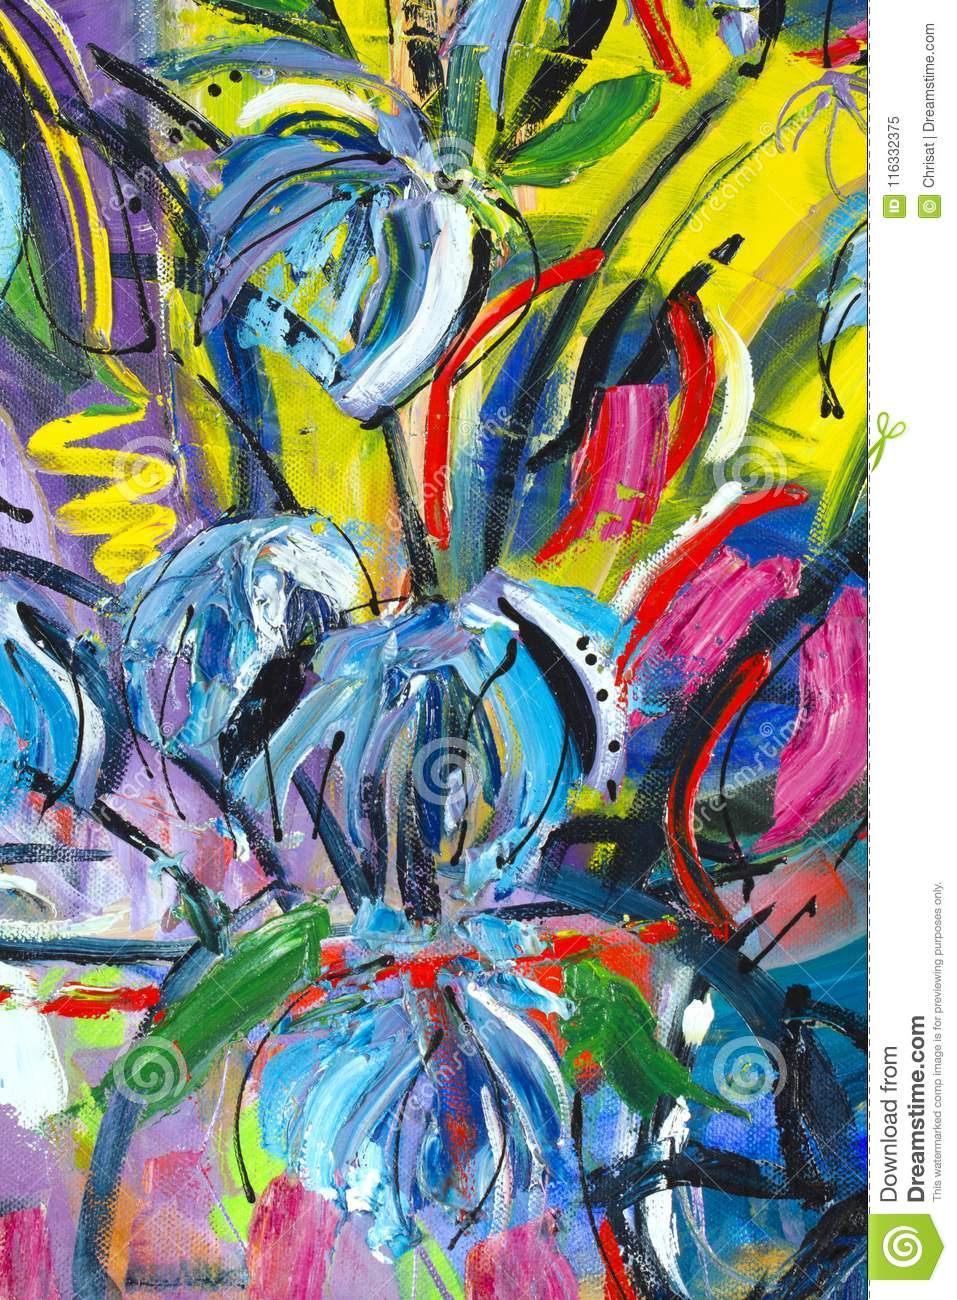 Painting detail stock image  Image of creativity, flowers - 116332375